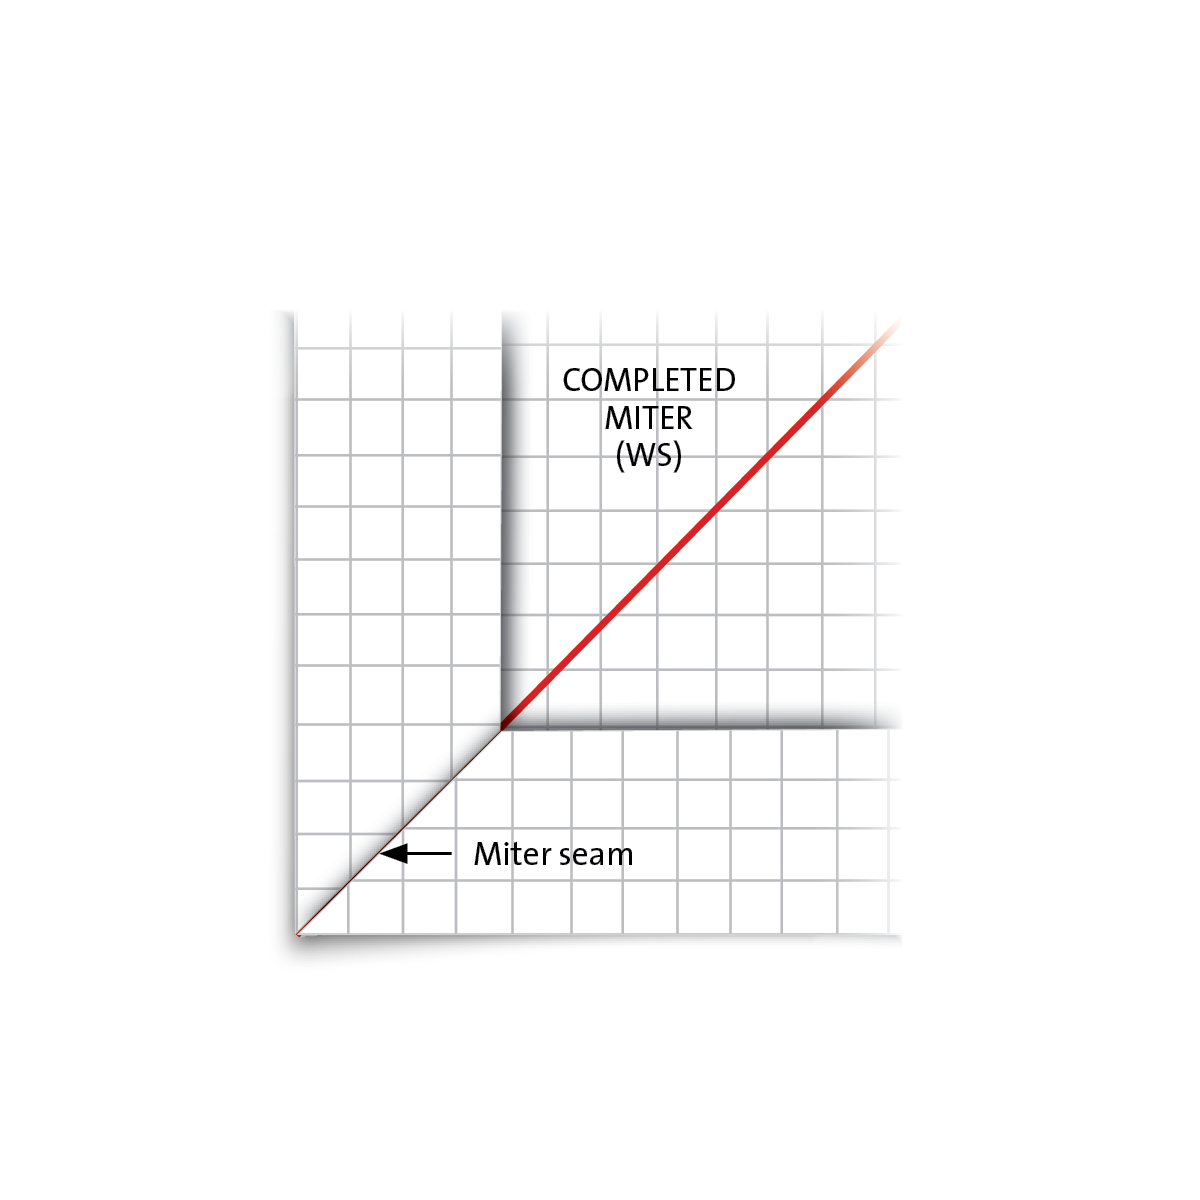 Complete mitered corner on graph paper